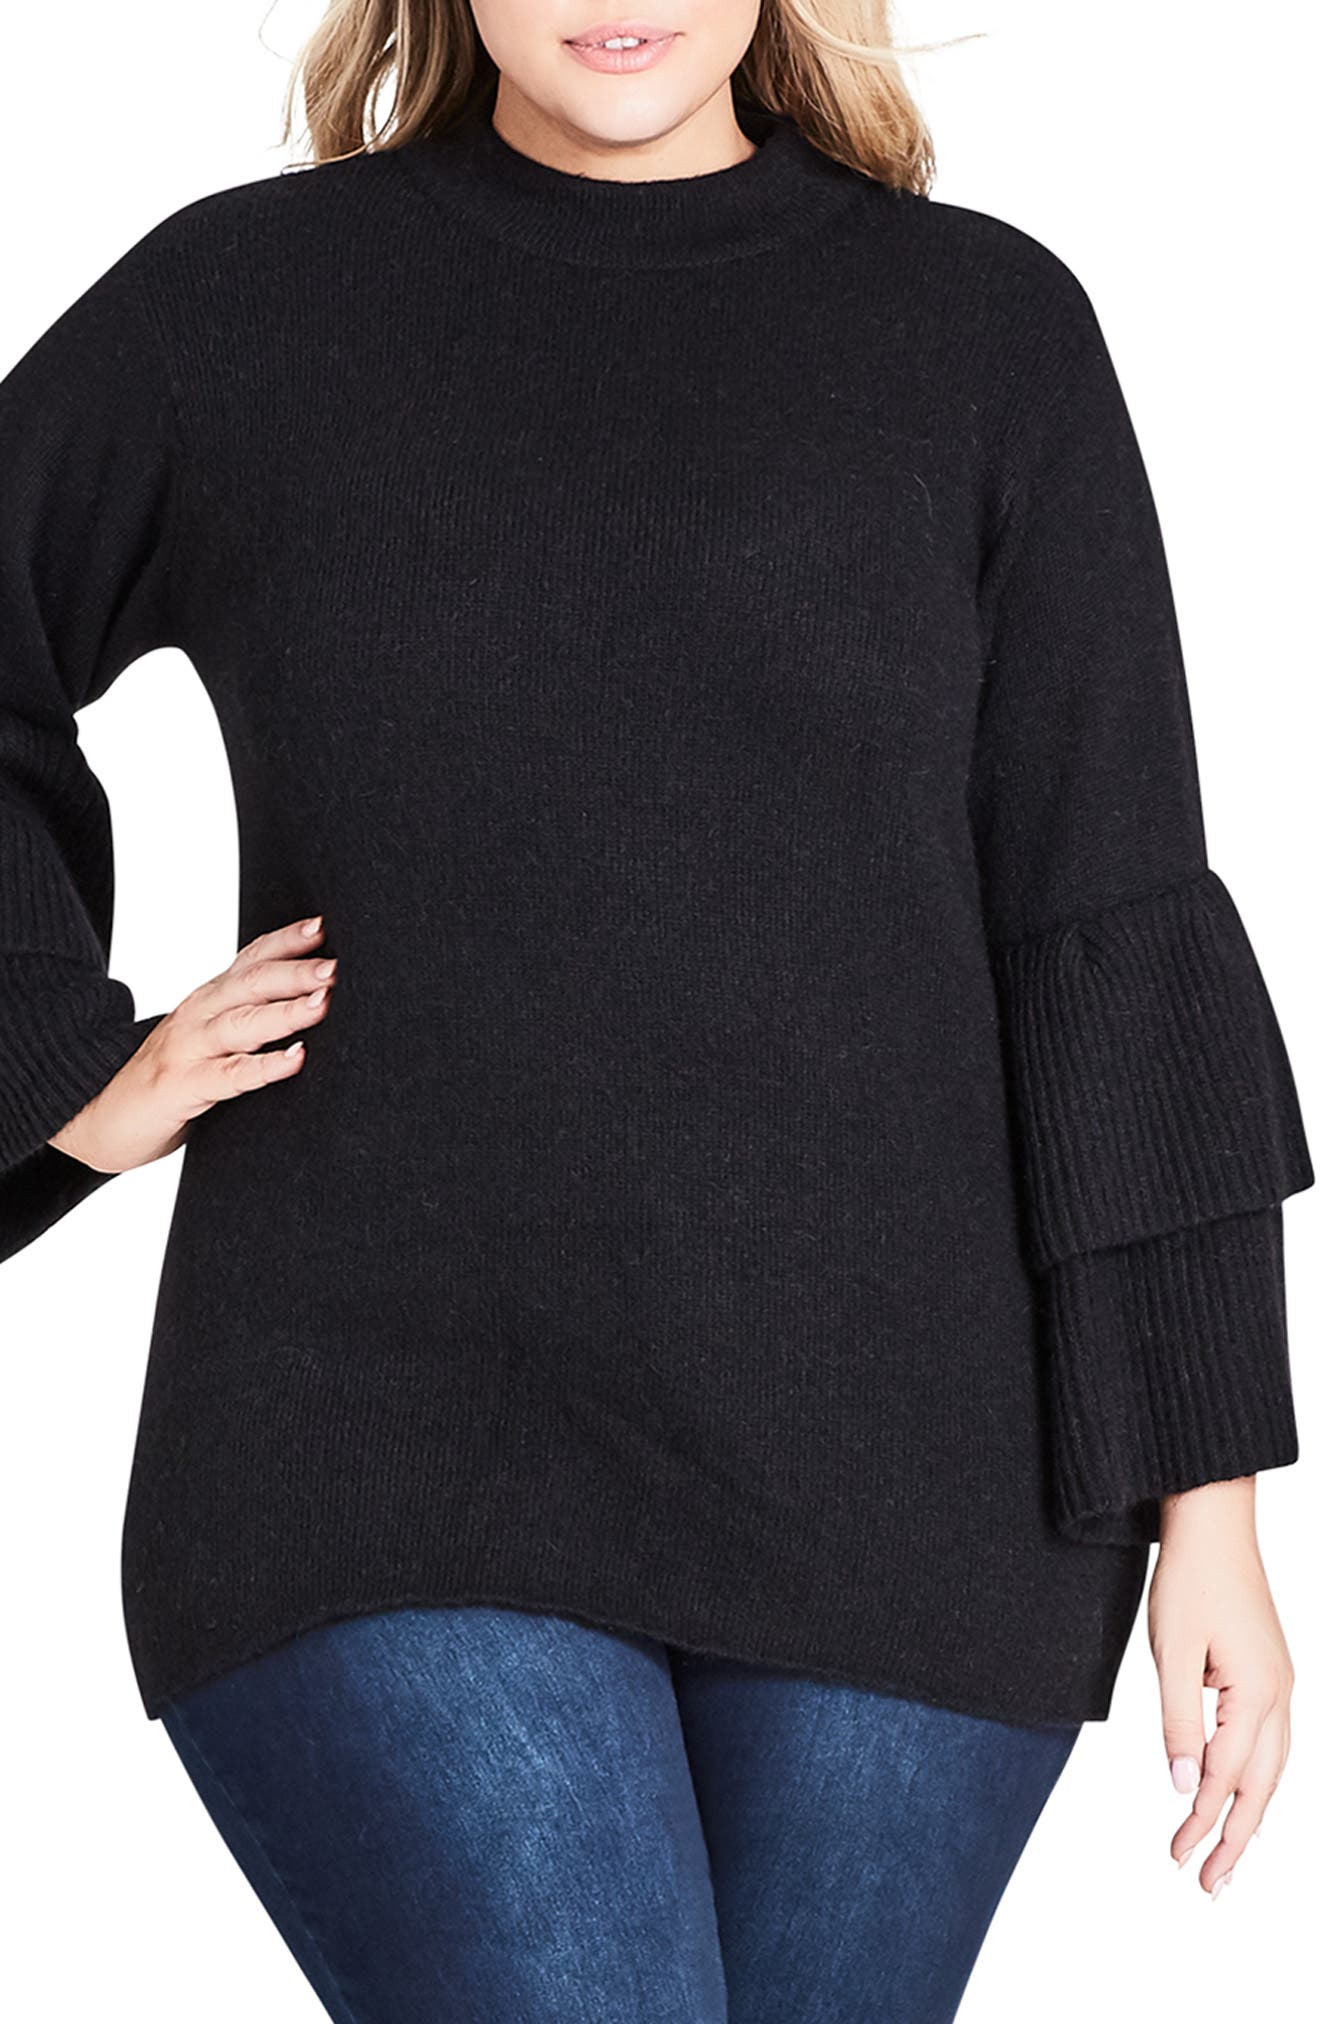 CITY CHIC, Tiered Sleeve Sweater, Main thumbnail 1, color, BLACK